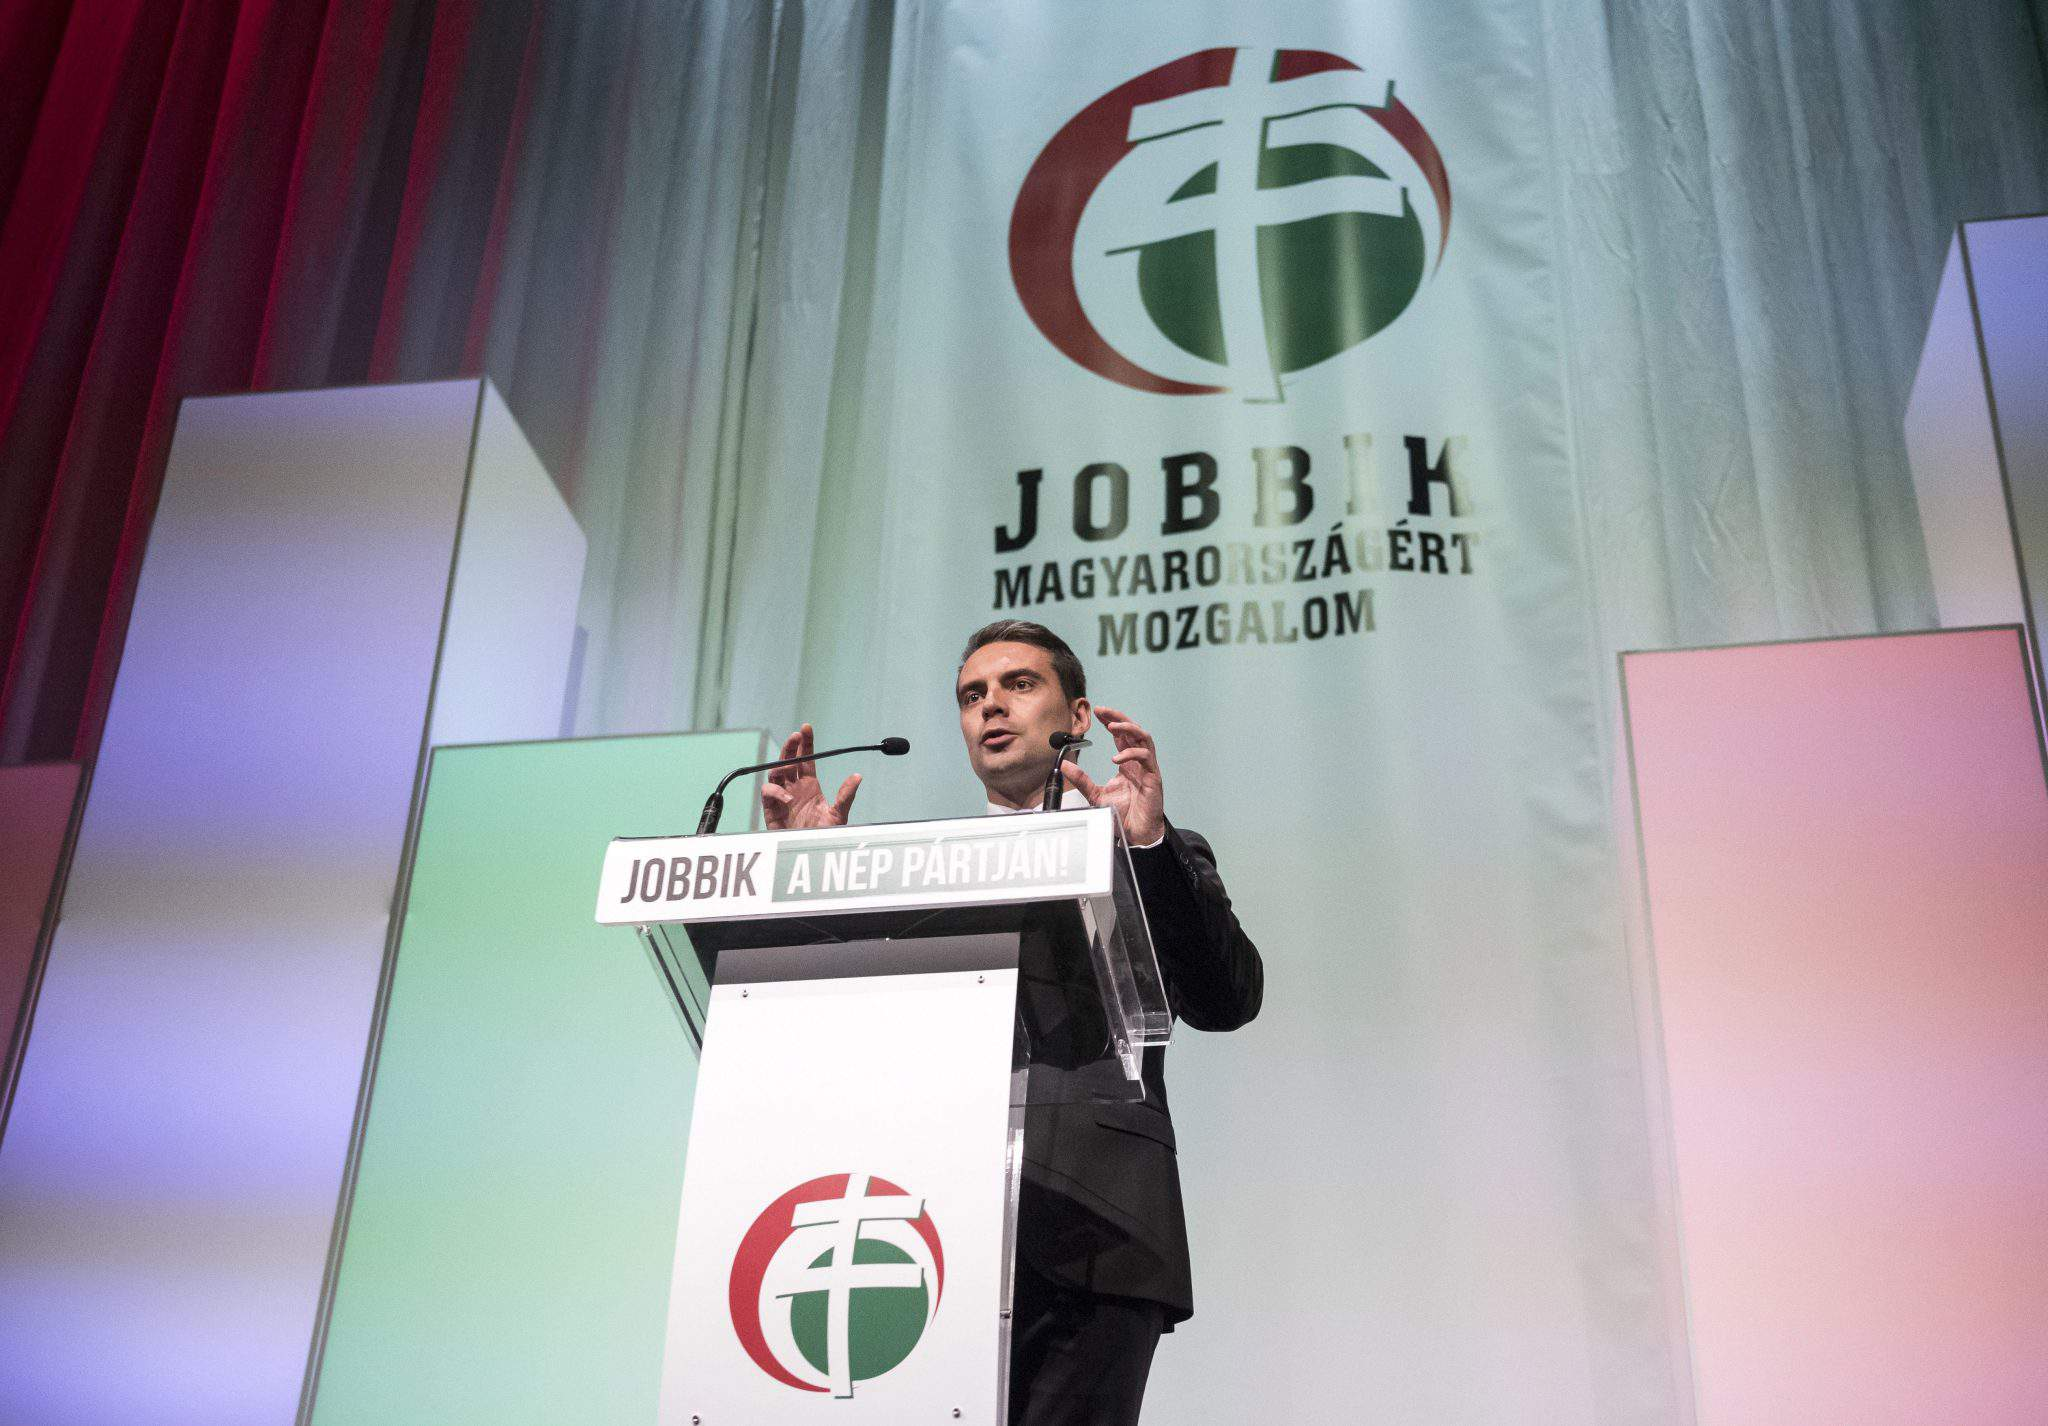 Jobbik was never a neo-Nazi party